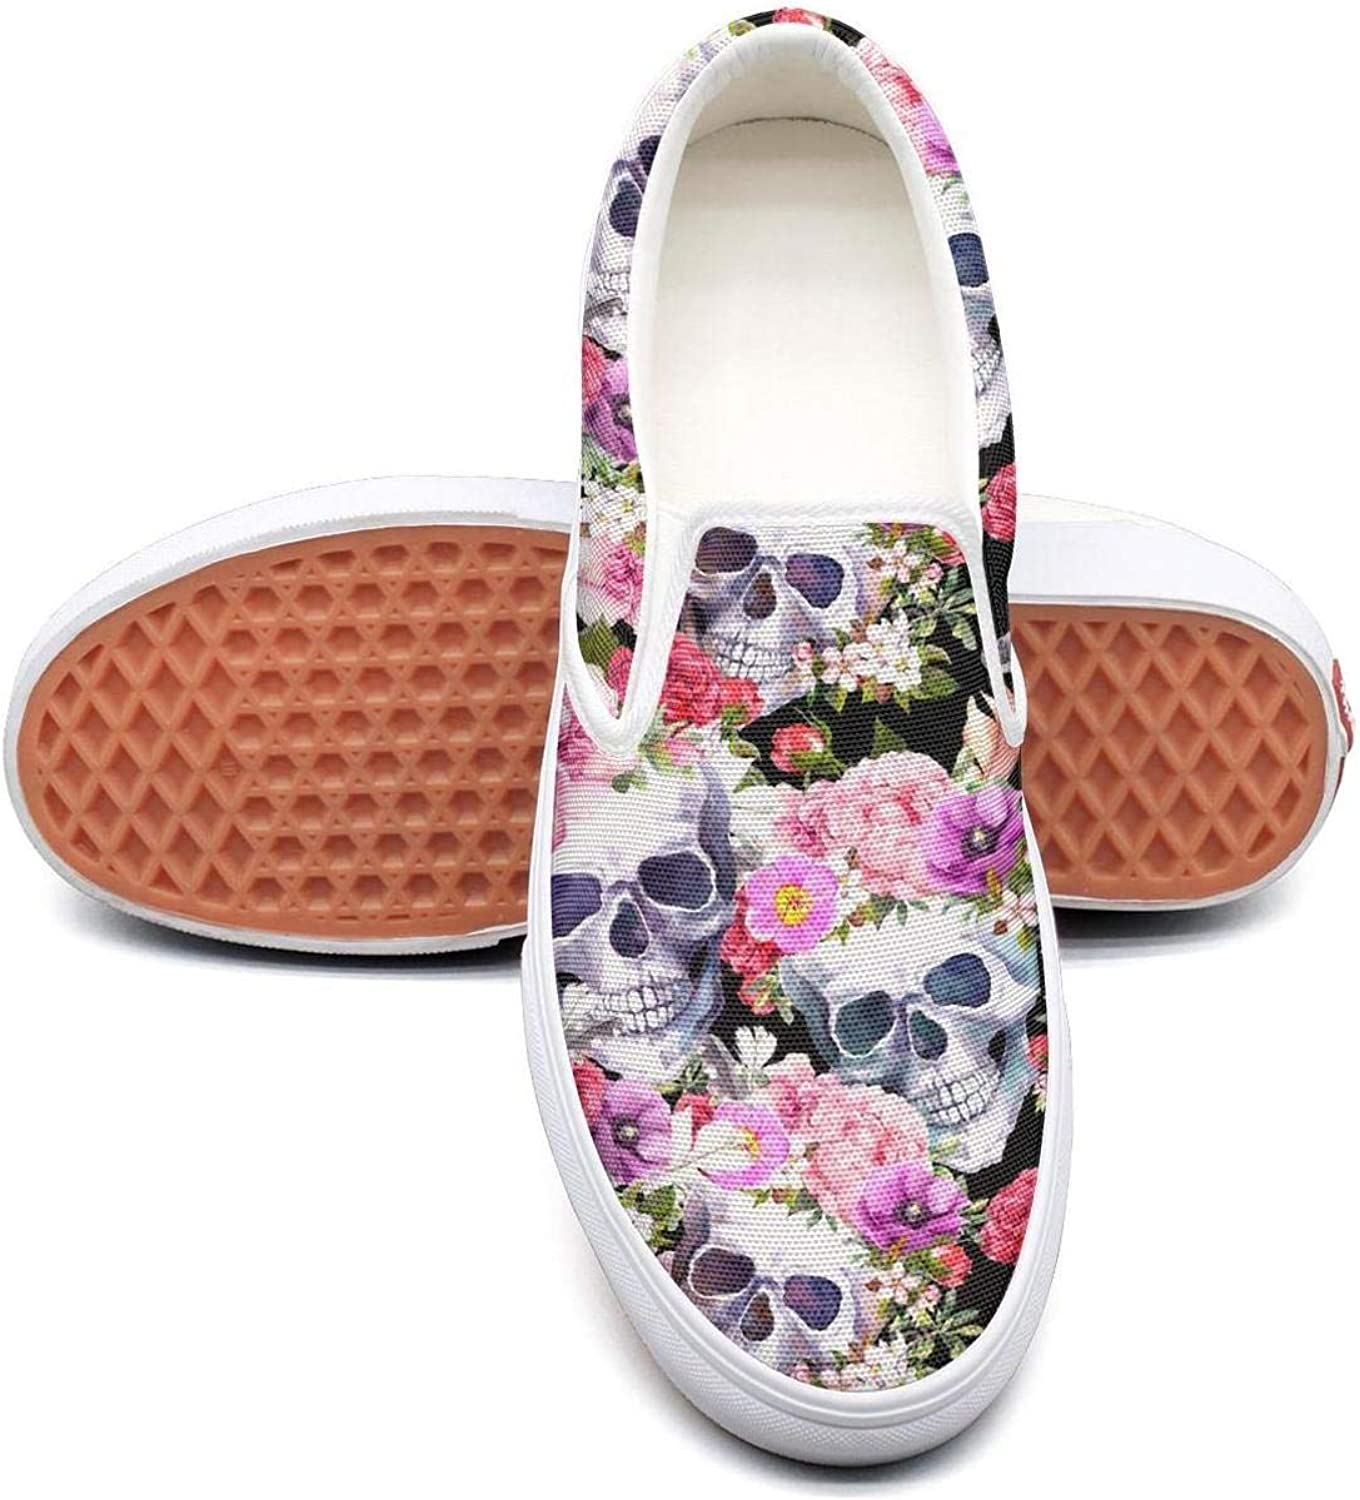 Human Skull and Flower Slip On Superior Comfort Sneakers Canvas shoes for Women Lightweight